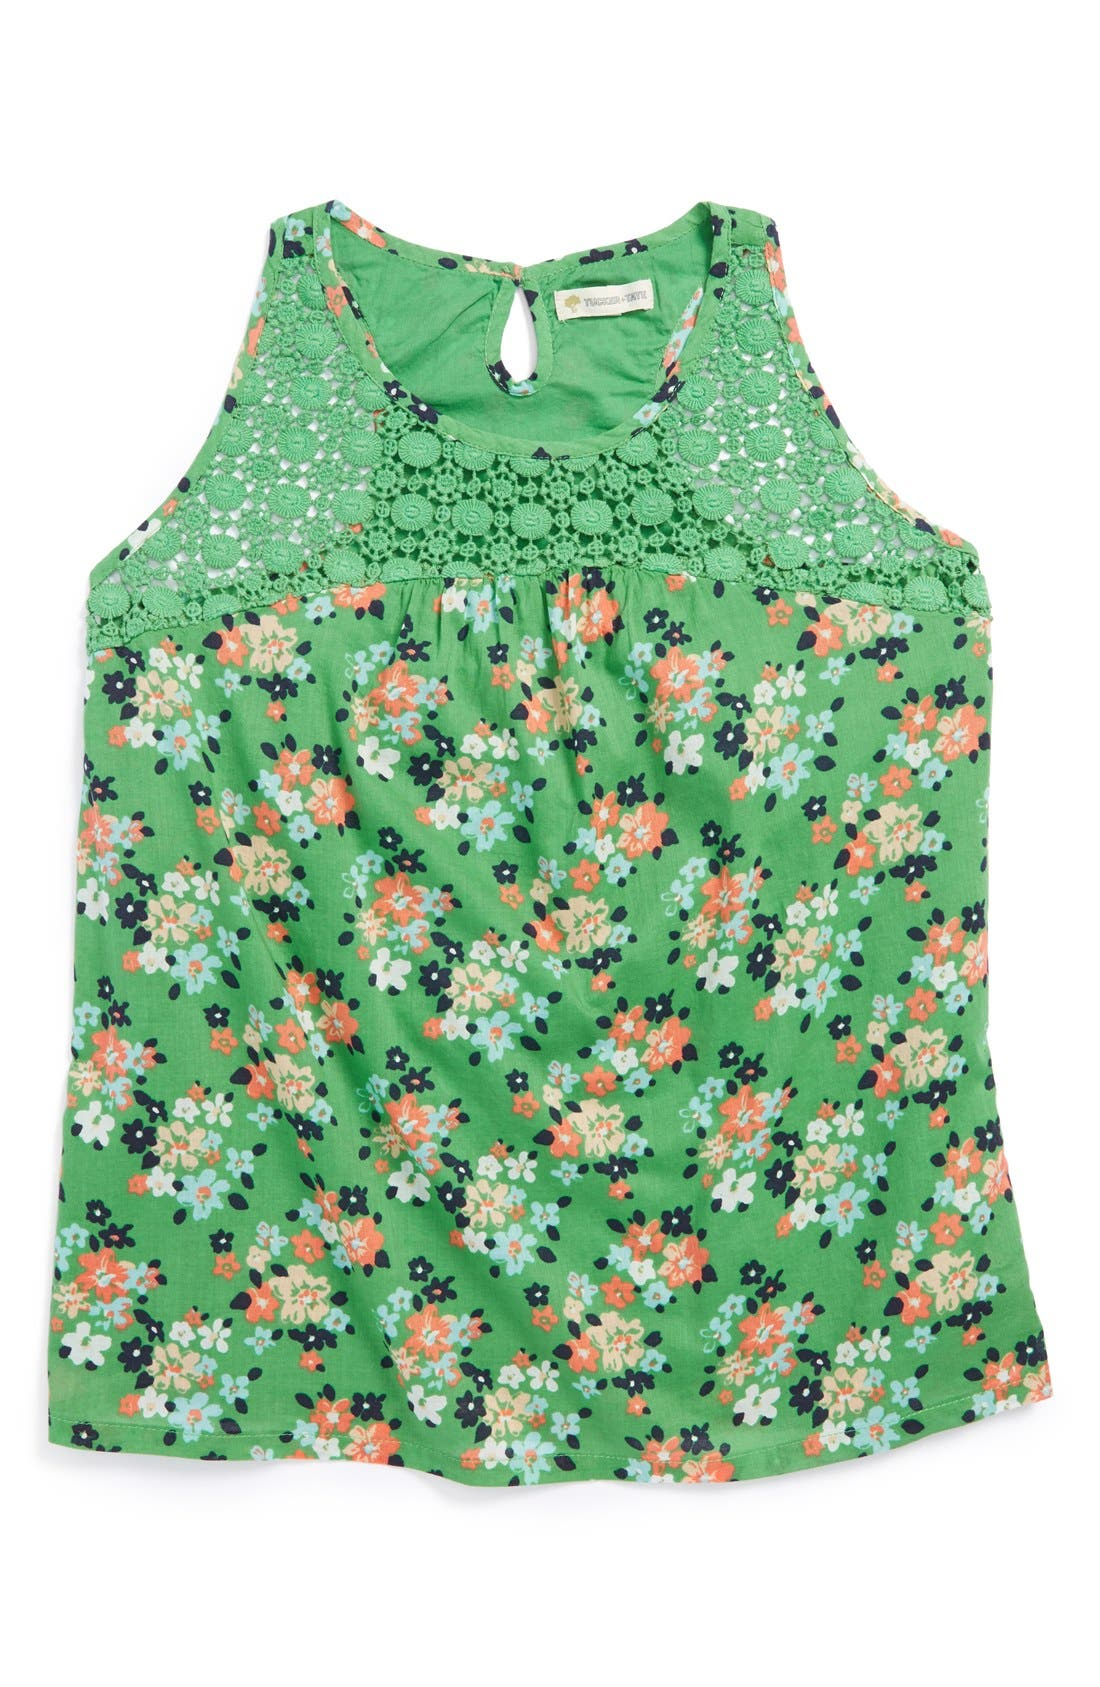 Main Image - Tucker + Tate 'Lily' Sleeveless Top (Big Girls)